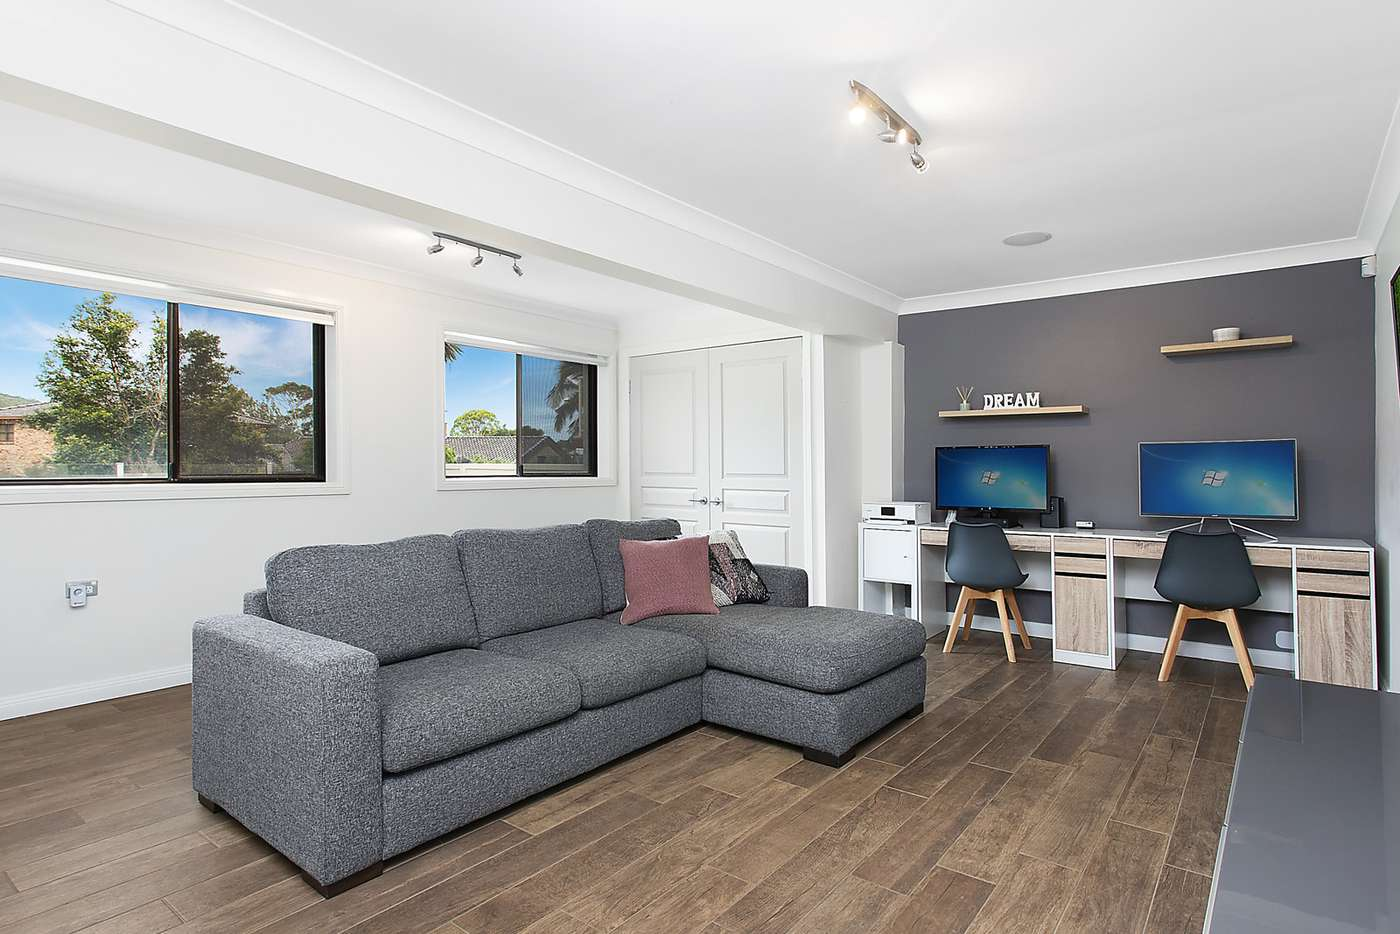 Sixth view of Homely house listing, 12 Blanchard Crescent, Balgownie NSW 2519